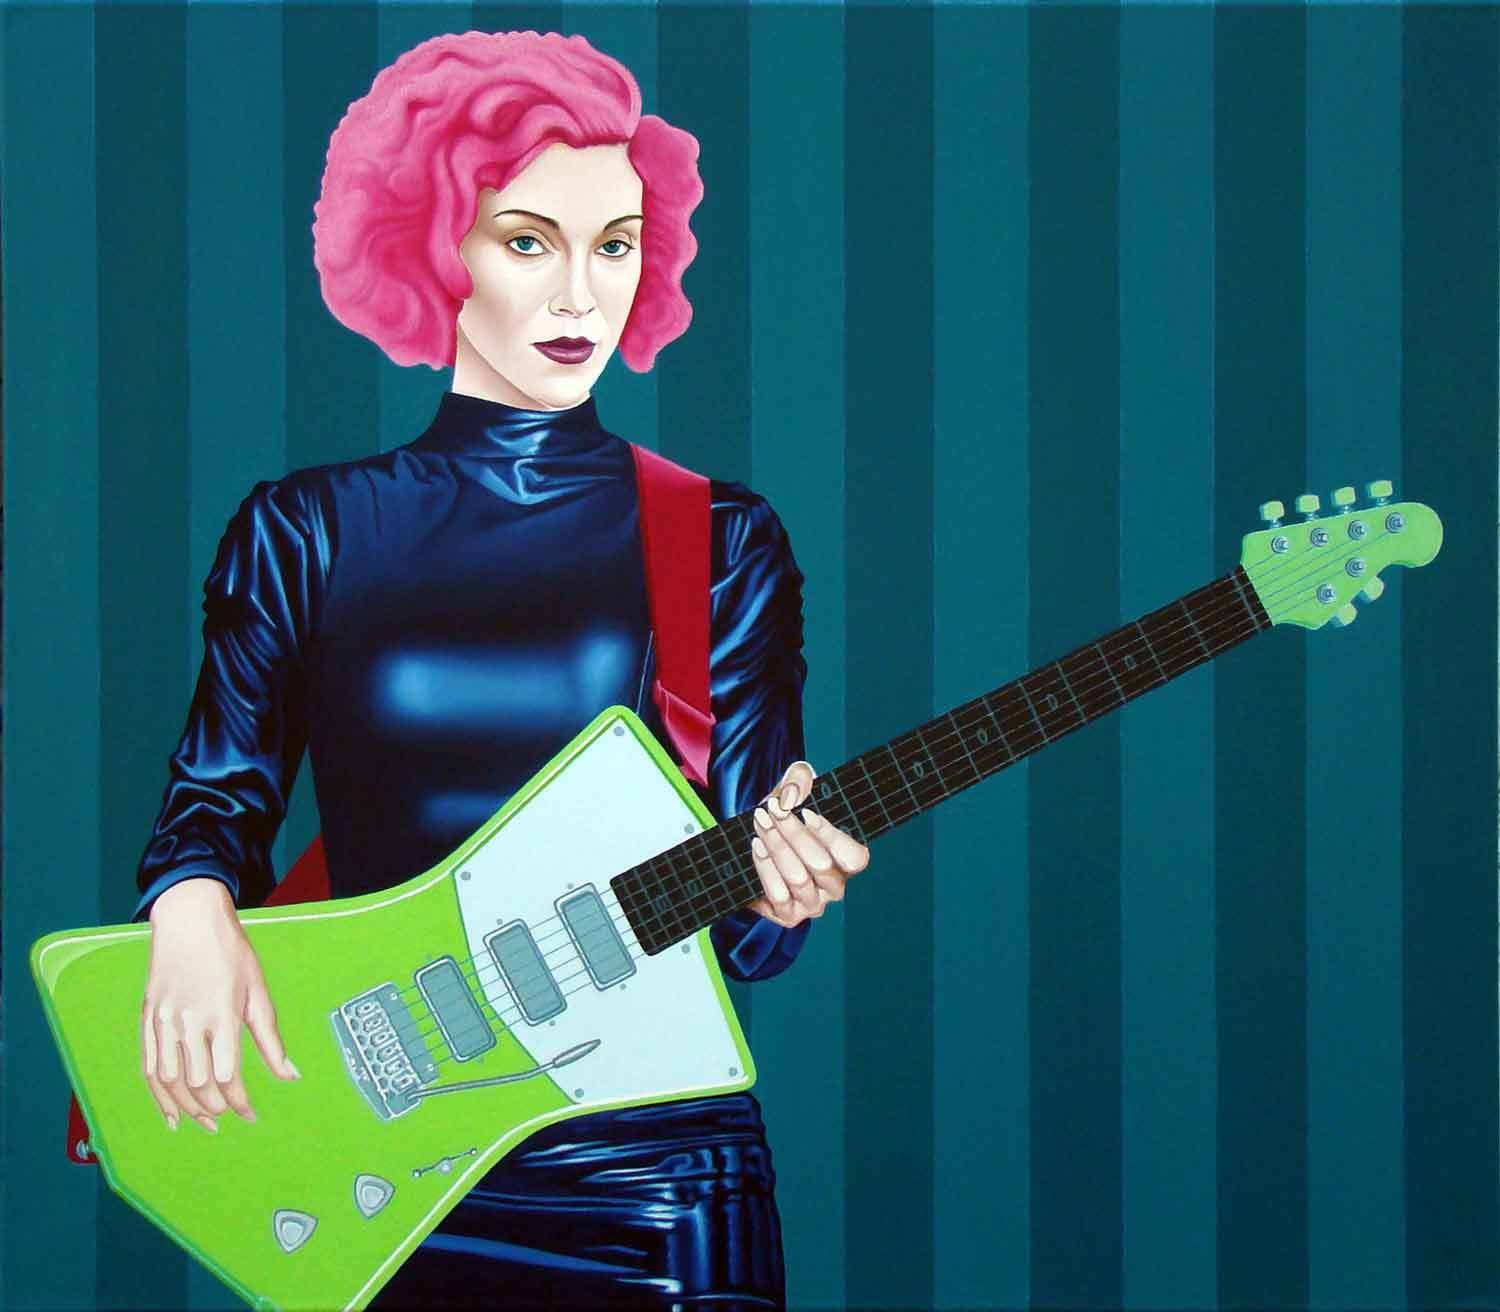 St. Vincent холст, масло 70-80 см. 2018 год.